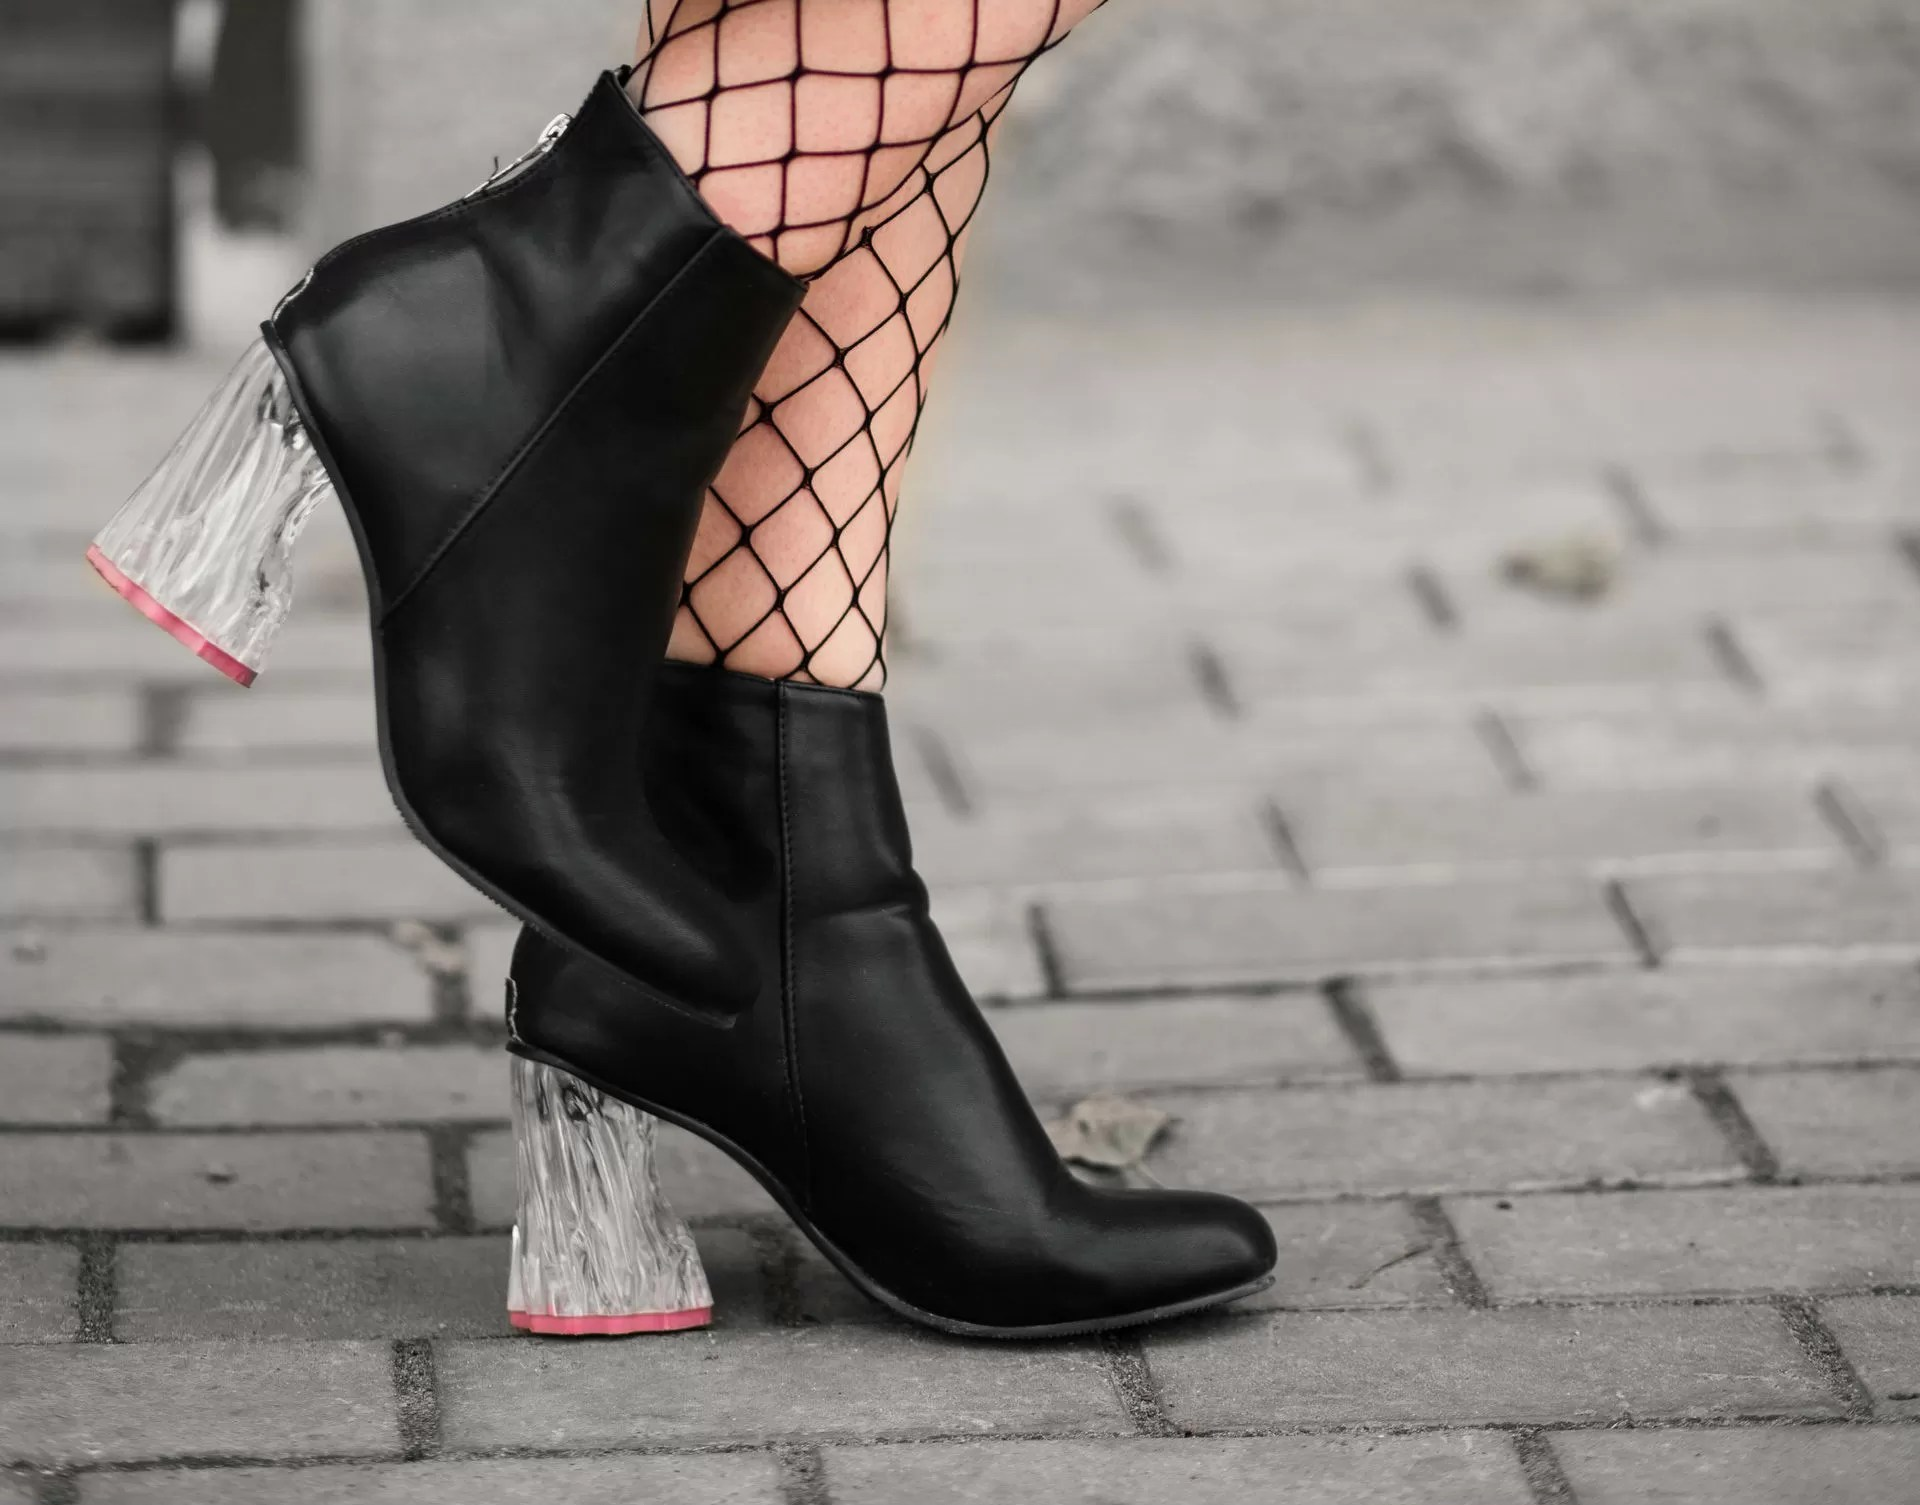 5 Best Clear Heels You Need To See